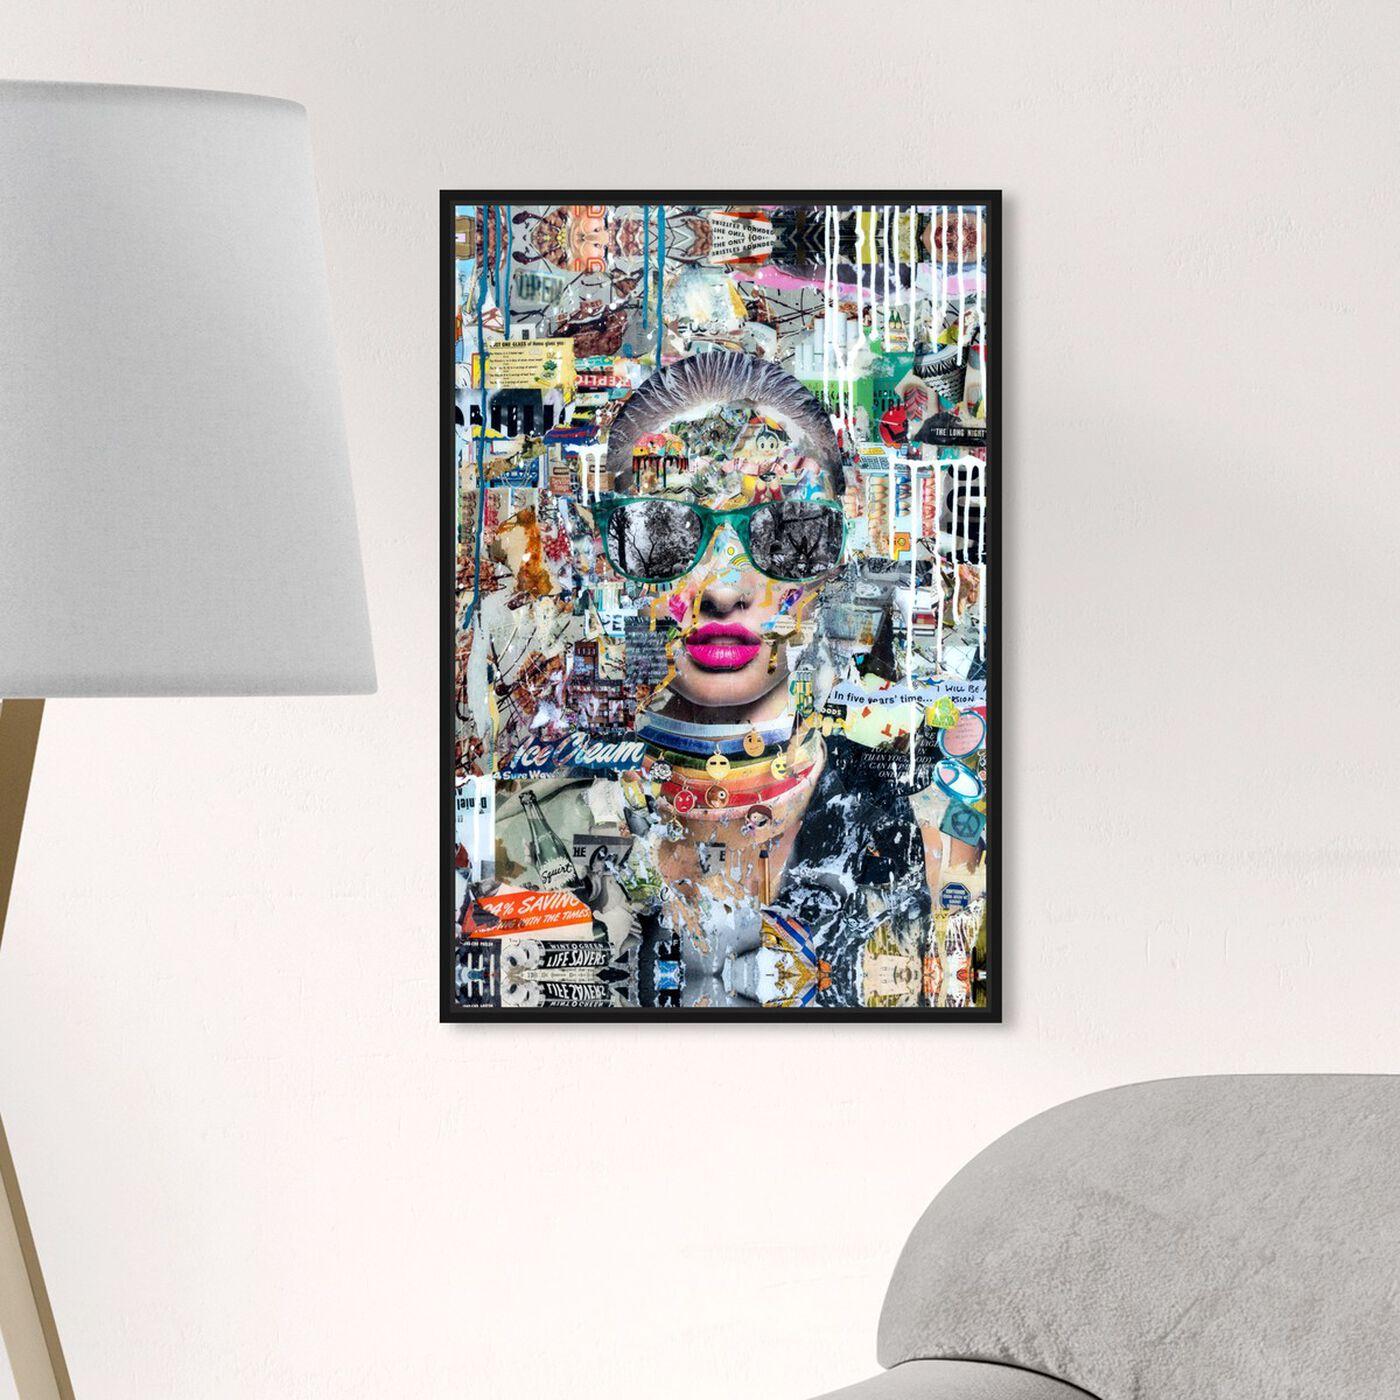 Hanging view of Katy Hirschfeld - LongNight featuring fashion and glam and portraits art.